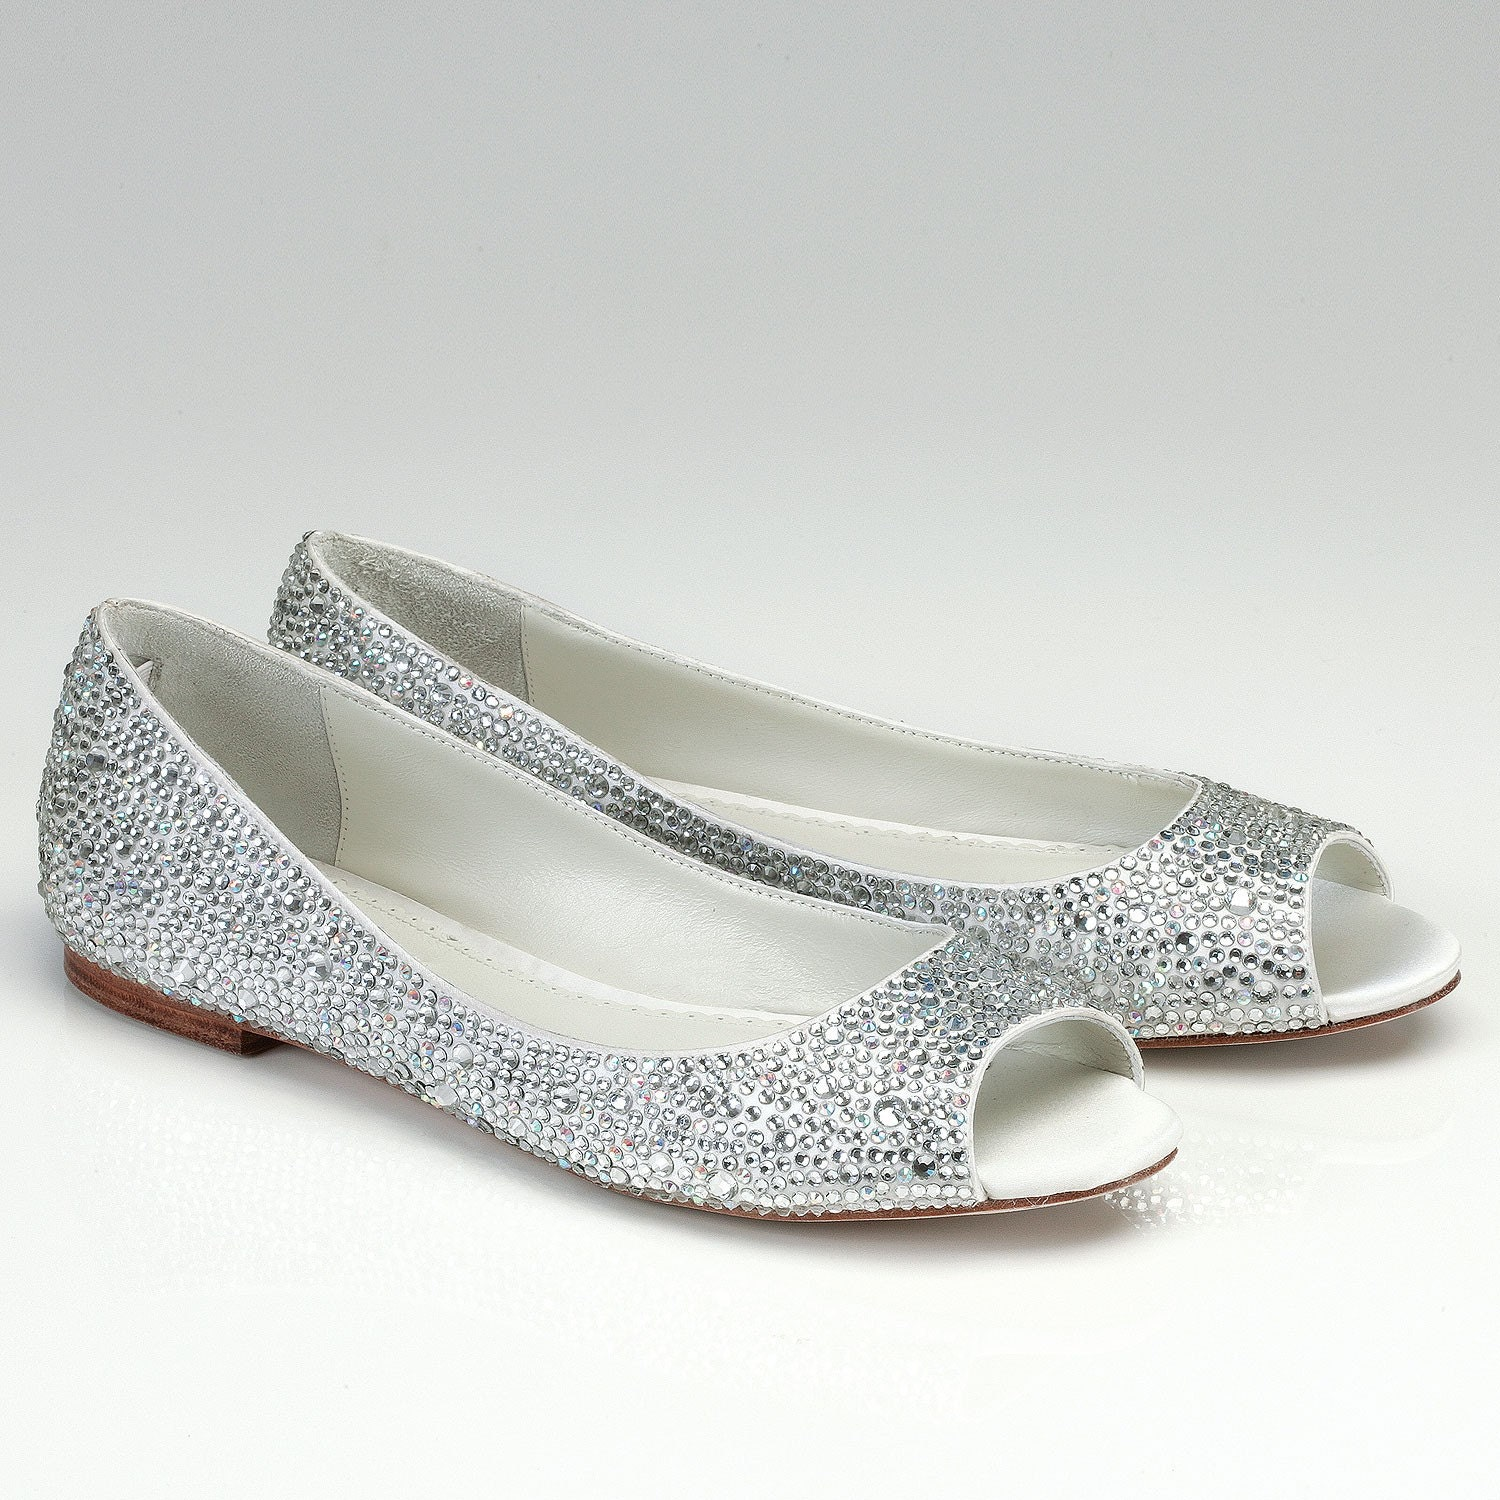 Bridal Shoes Silver: Flat Wedding Shoes Open Toes Silk Flat Bridal Shoes With